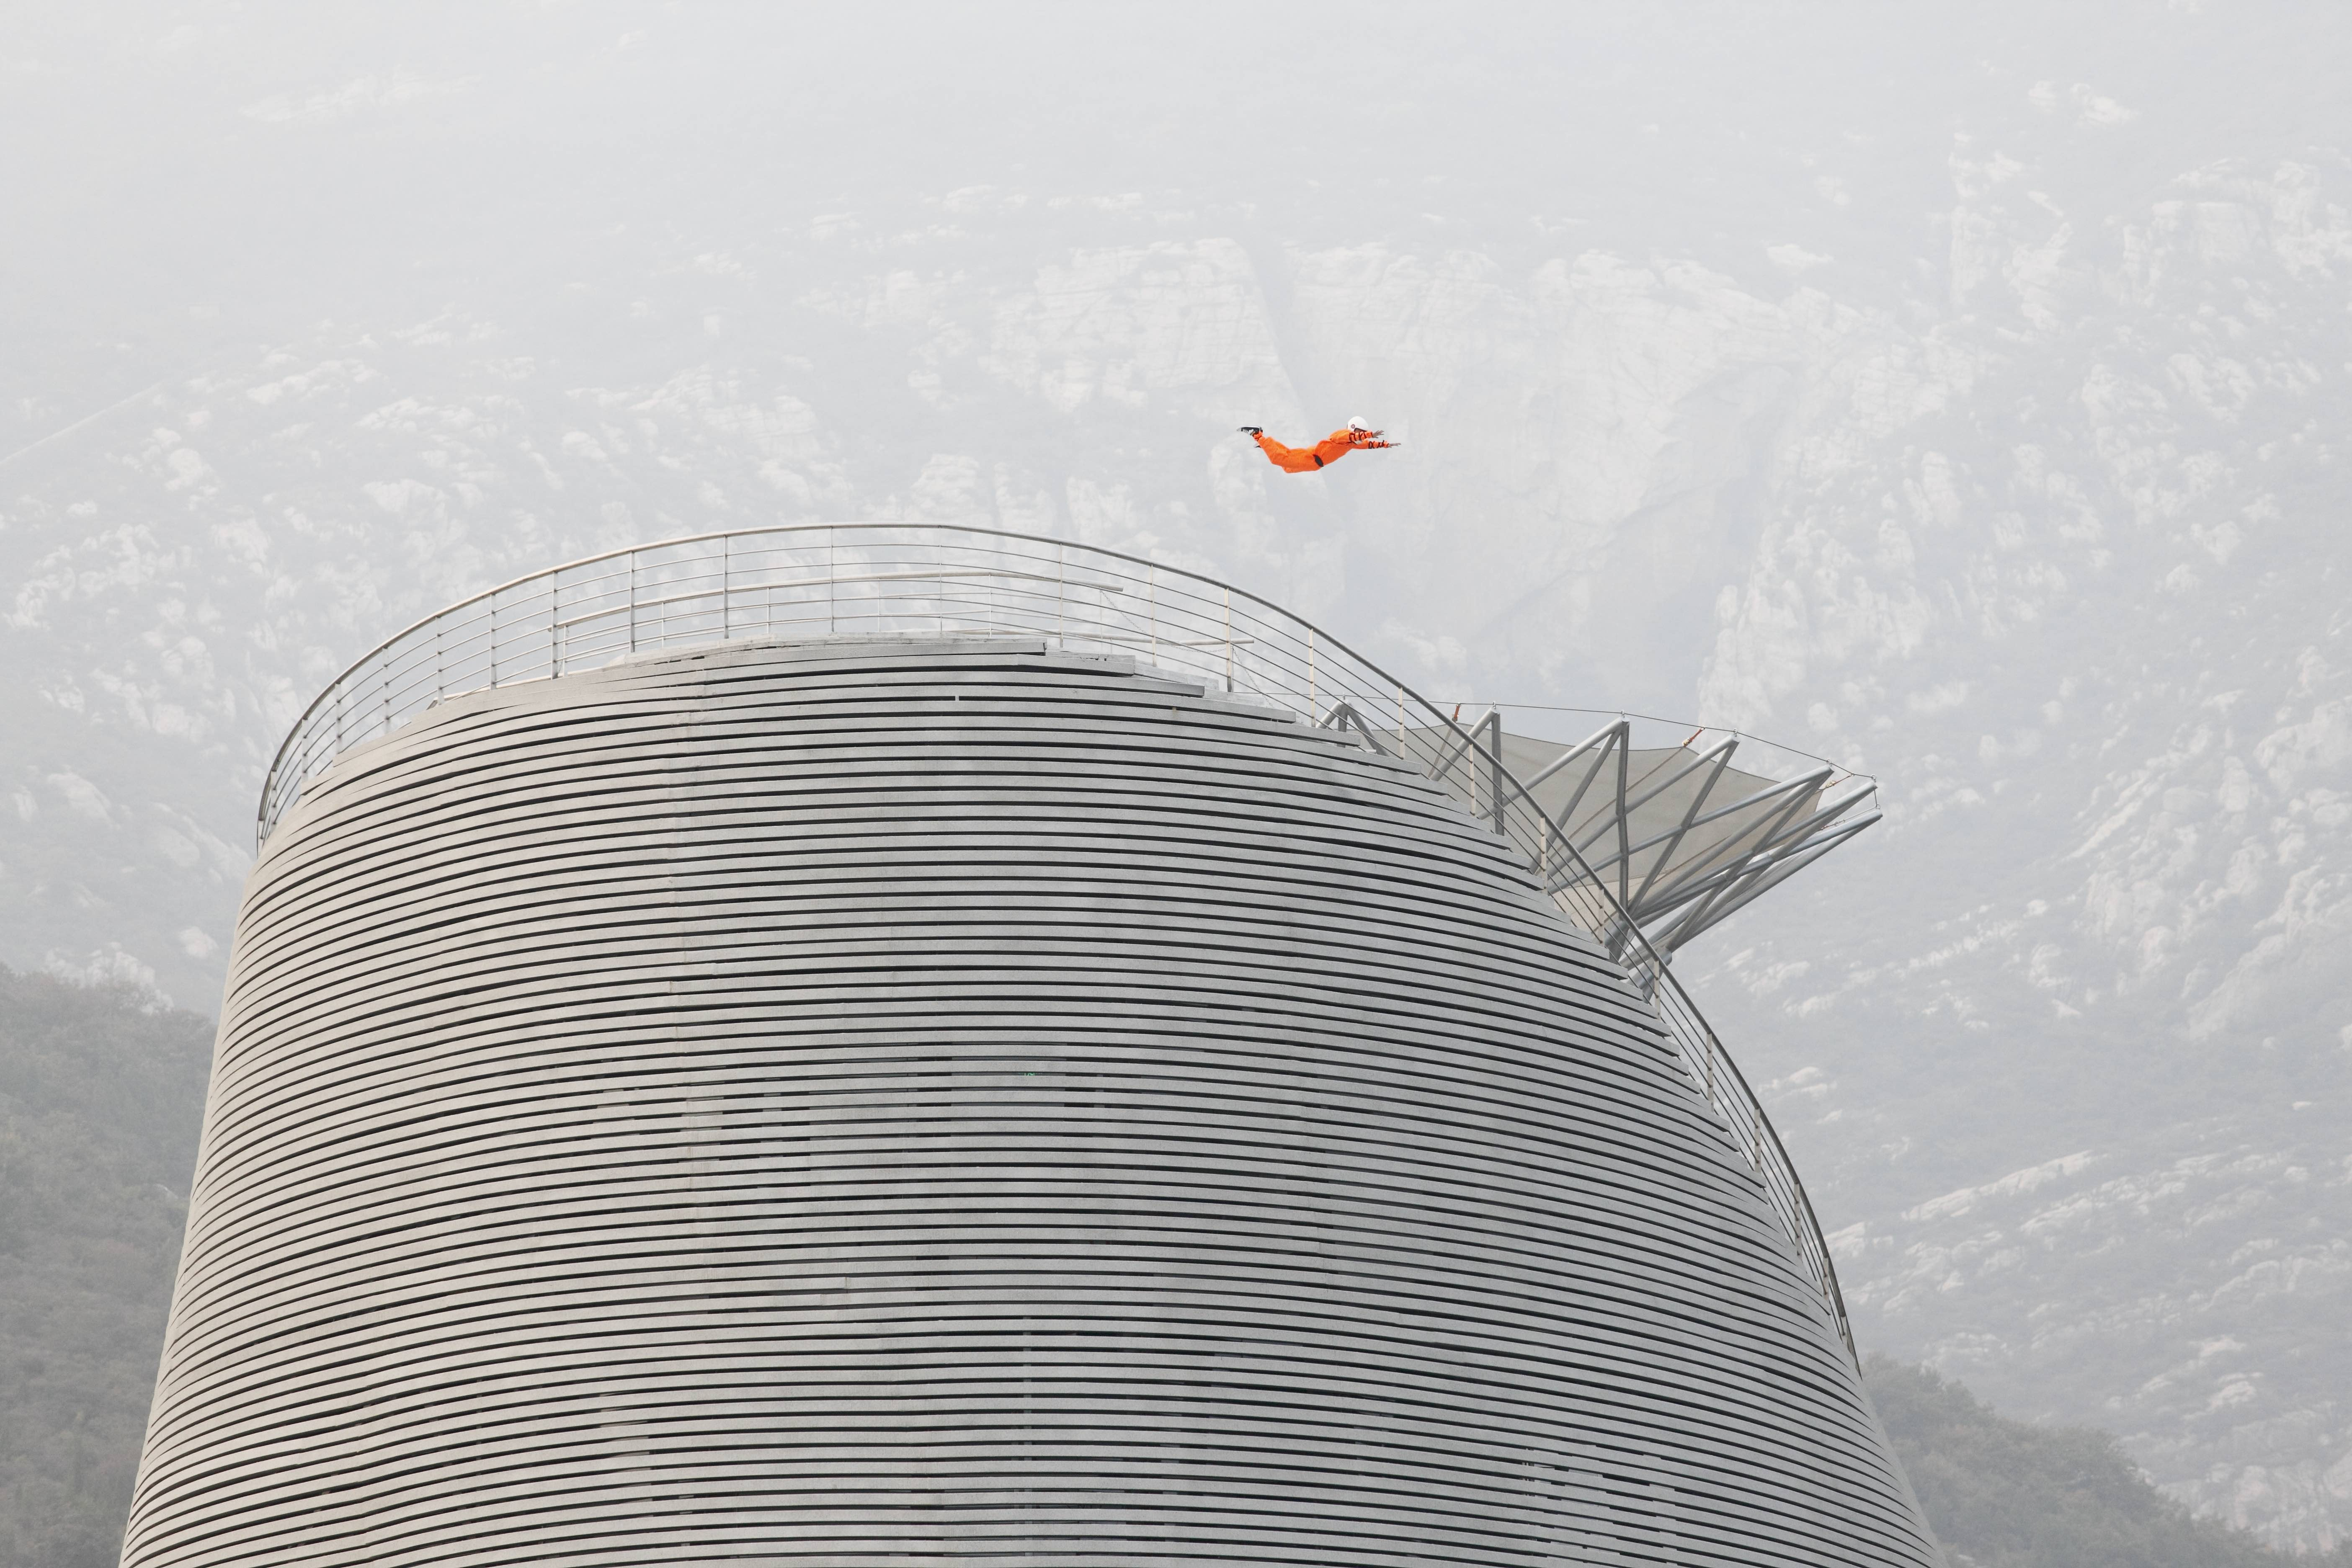 SHAOLIN FLYING MONKS THEATRE, Photo courtesy of Mailitis Architects © Ansis Starks